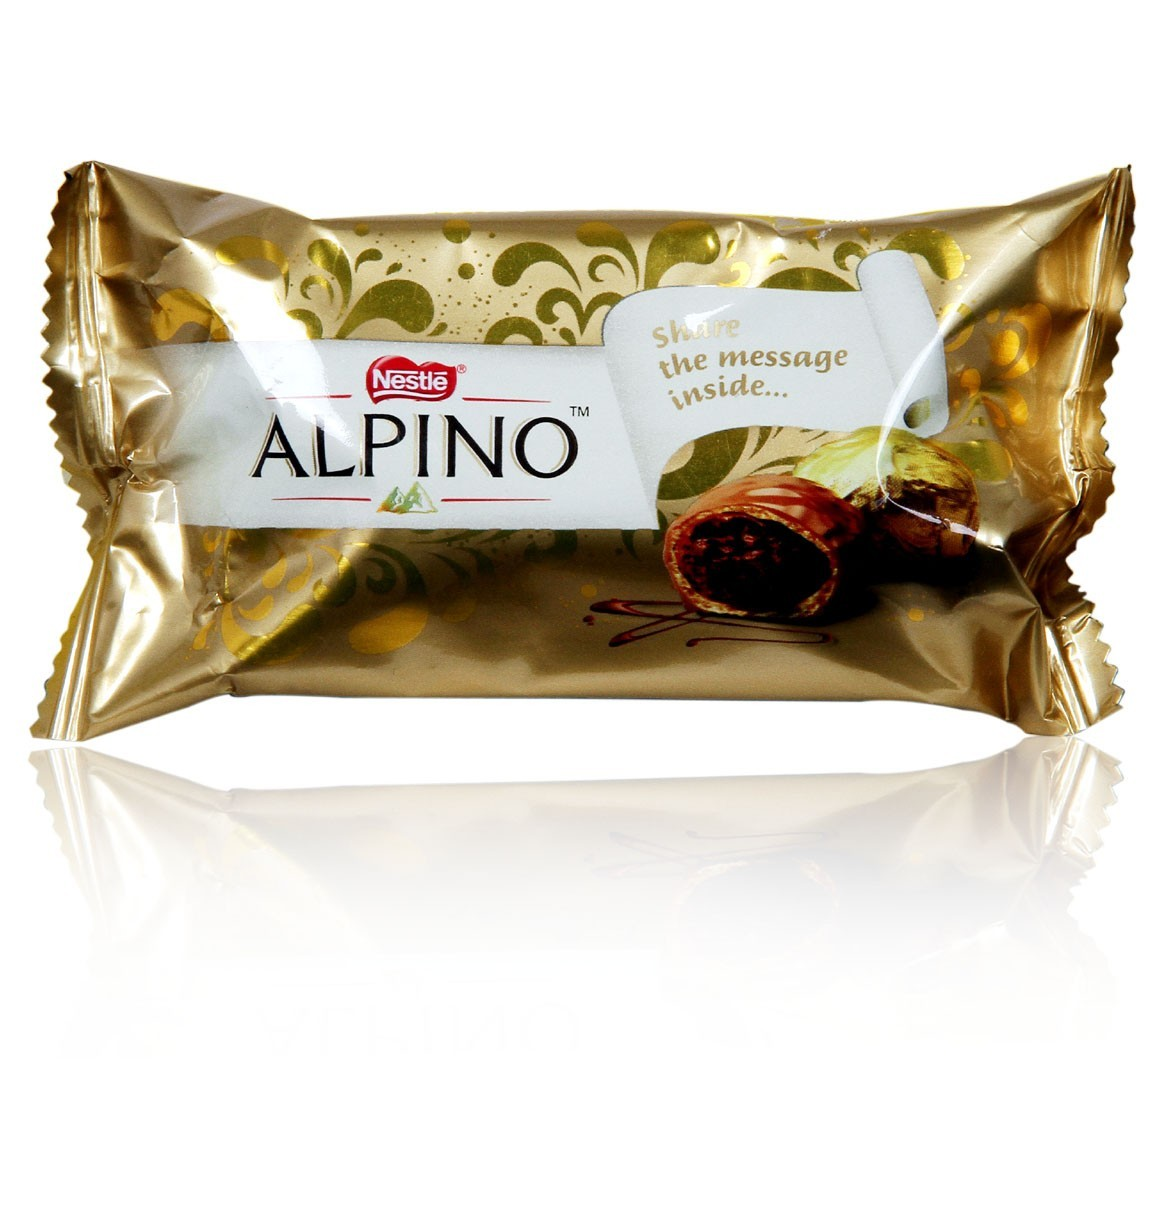 NESTLE ALPINO MILK CHOCOLATE Photos Images and Wallpapers 1170x1230